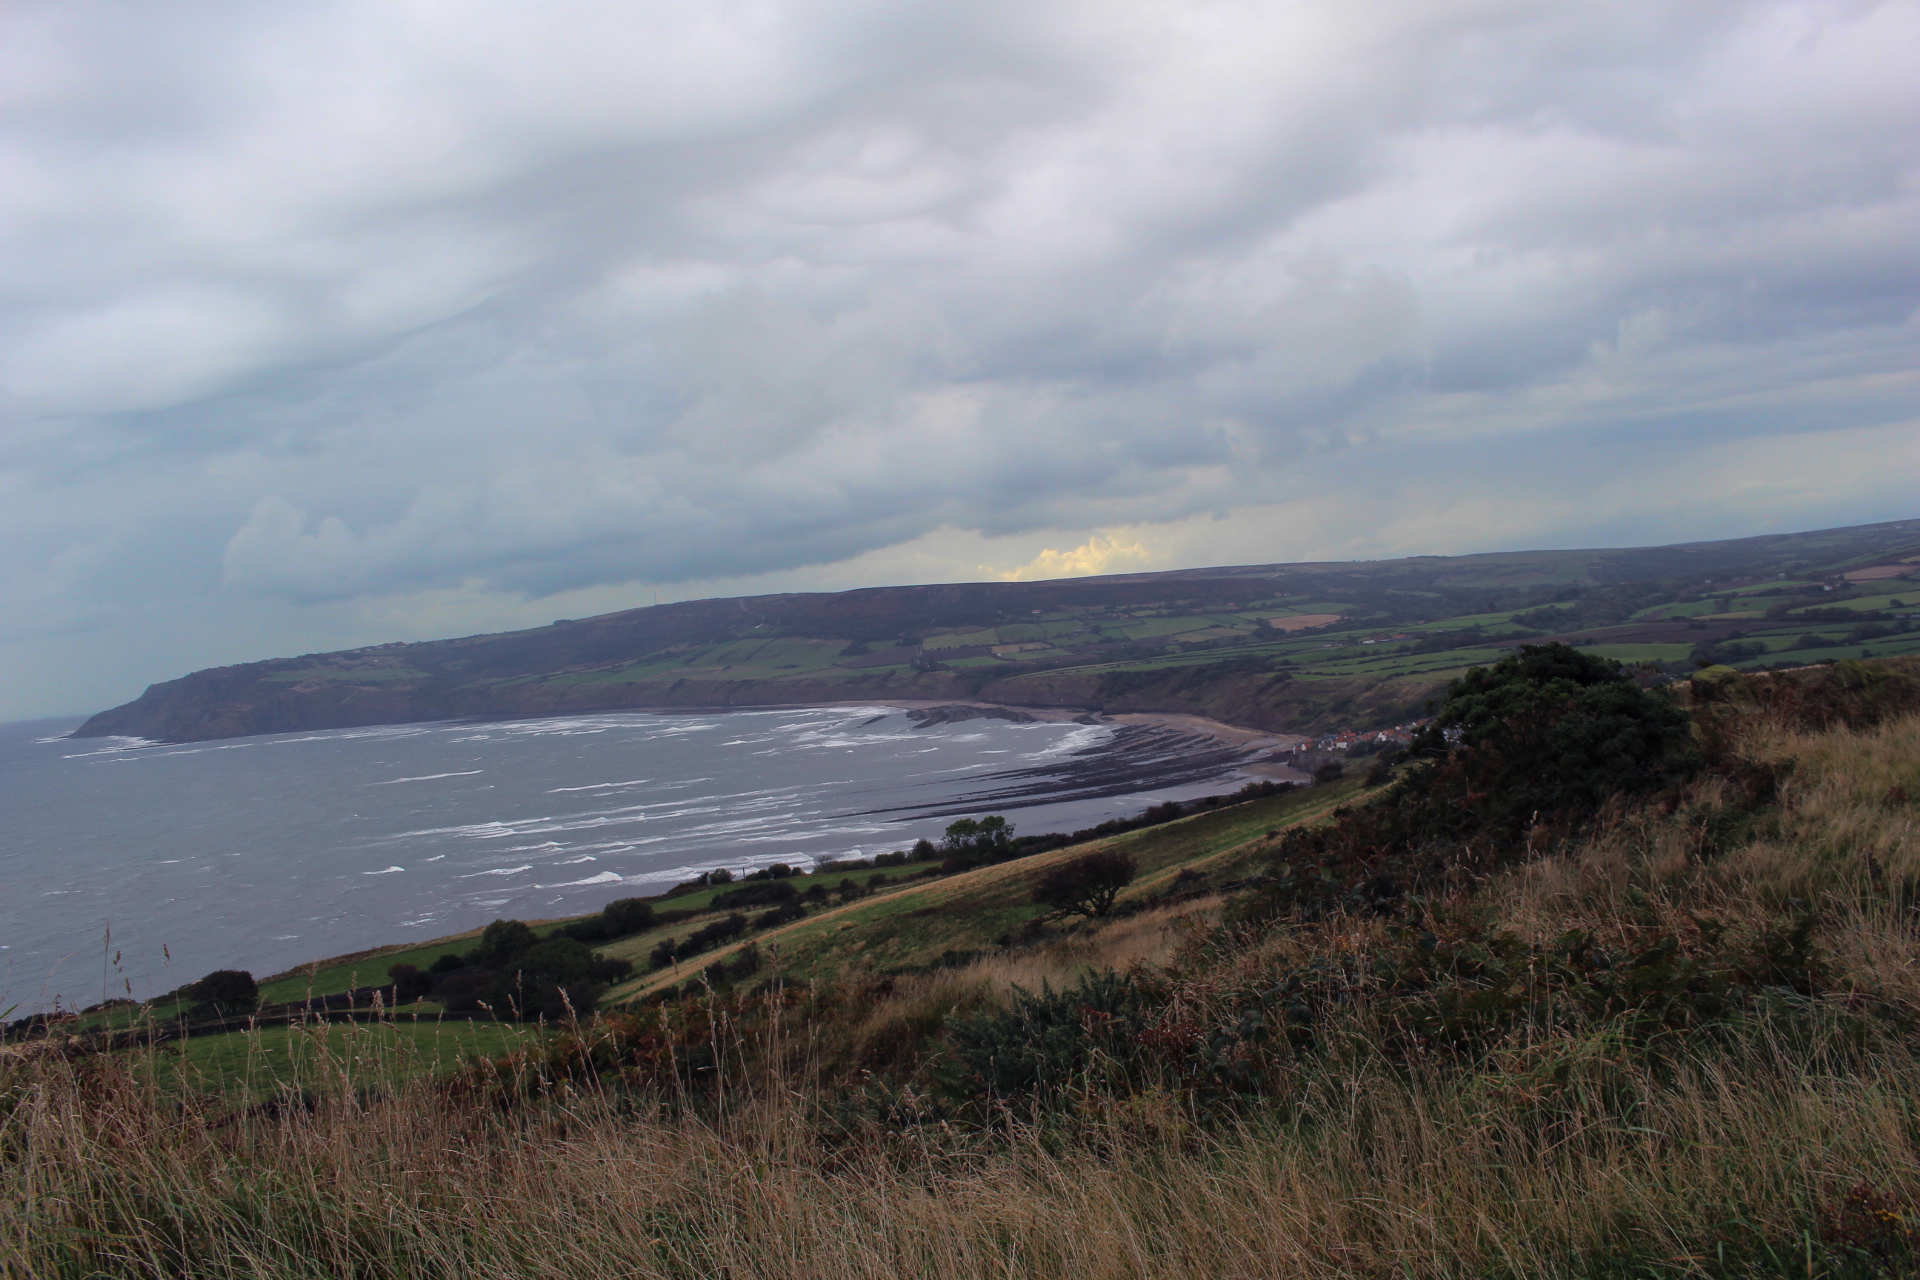 A windy, rainy Robin Hood's Bay